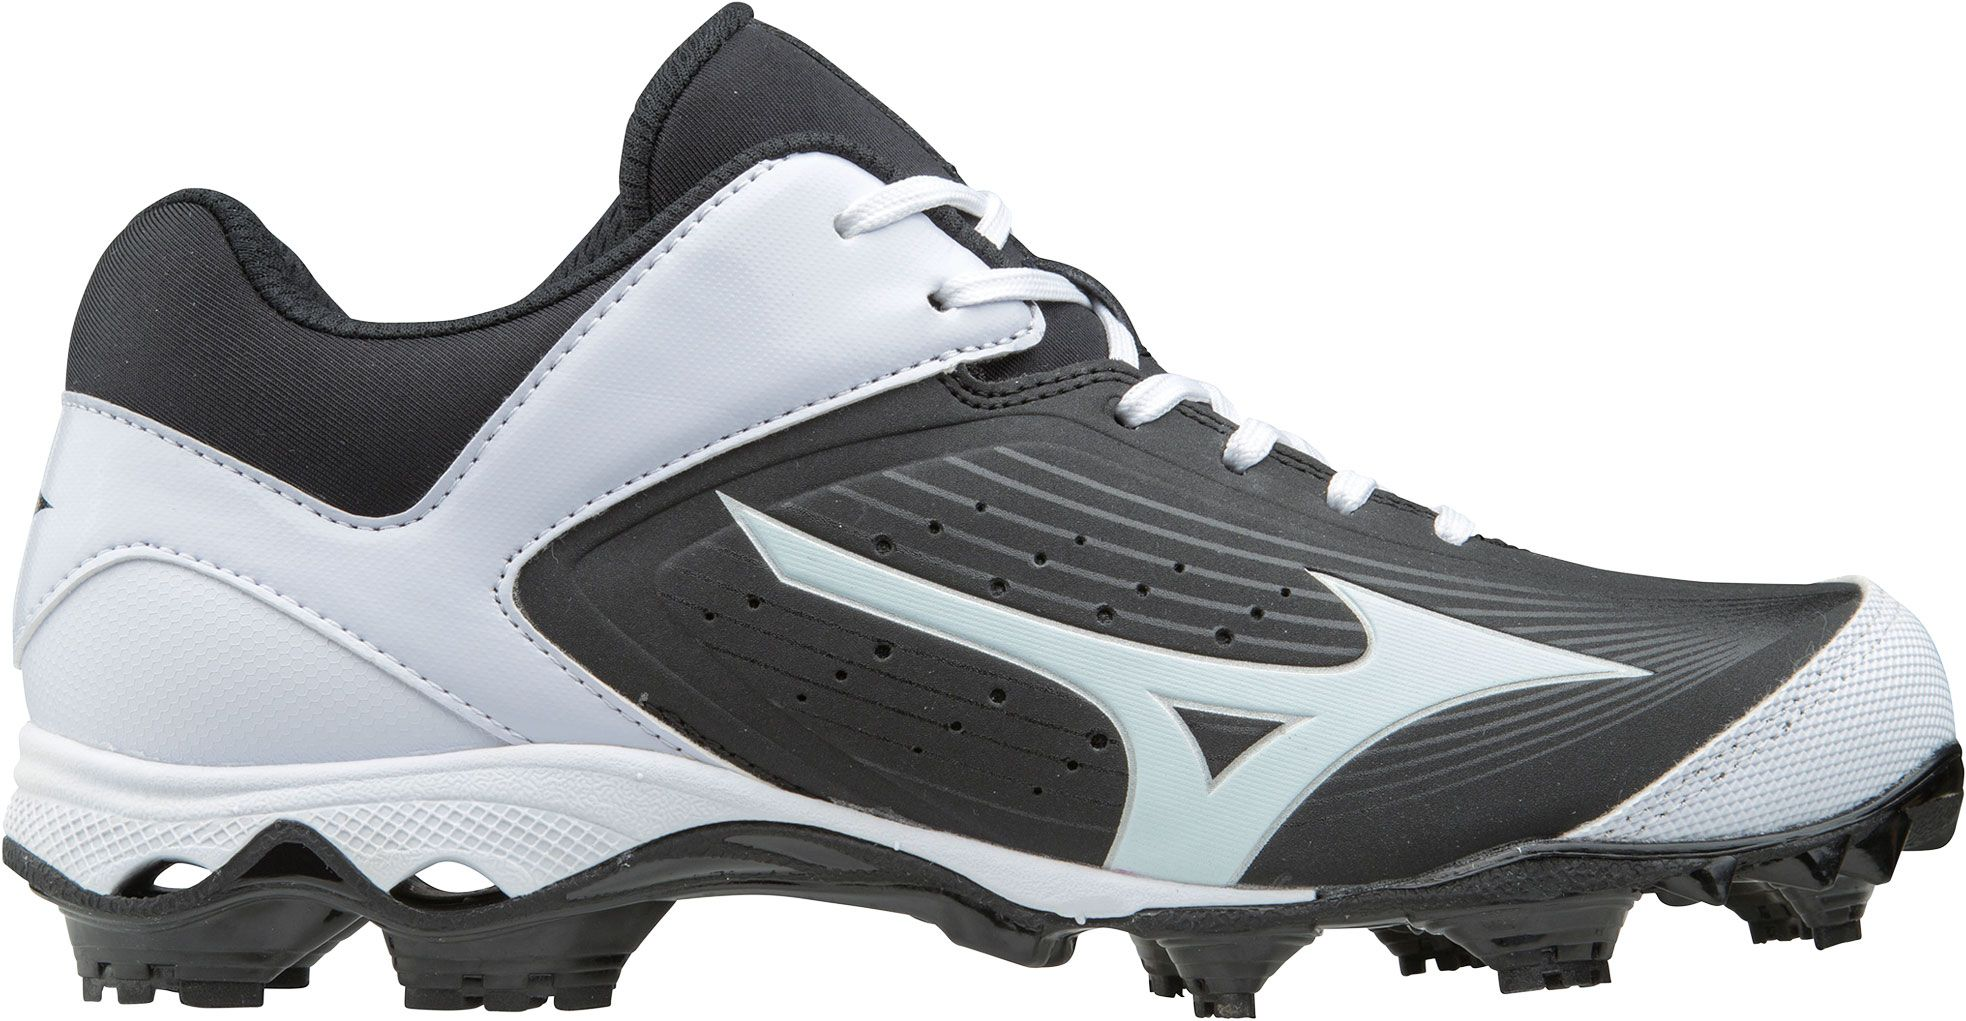 729e1e28dbae white mizuno metal softball cleats Mizuno Women\u0027s 9-Spike Advanced  Finch Elite 3 Softball Cleats .